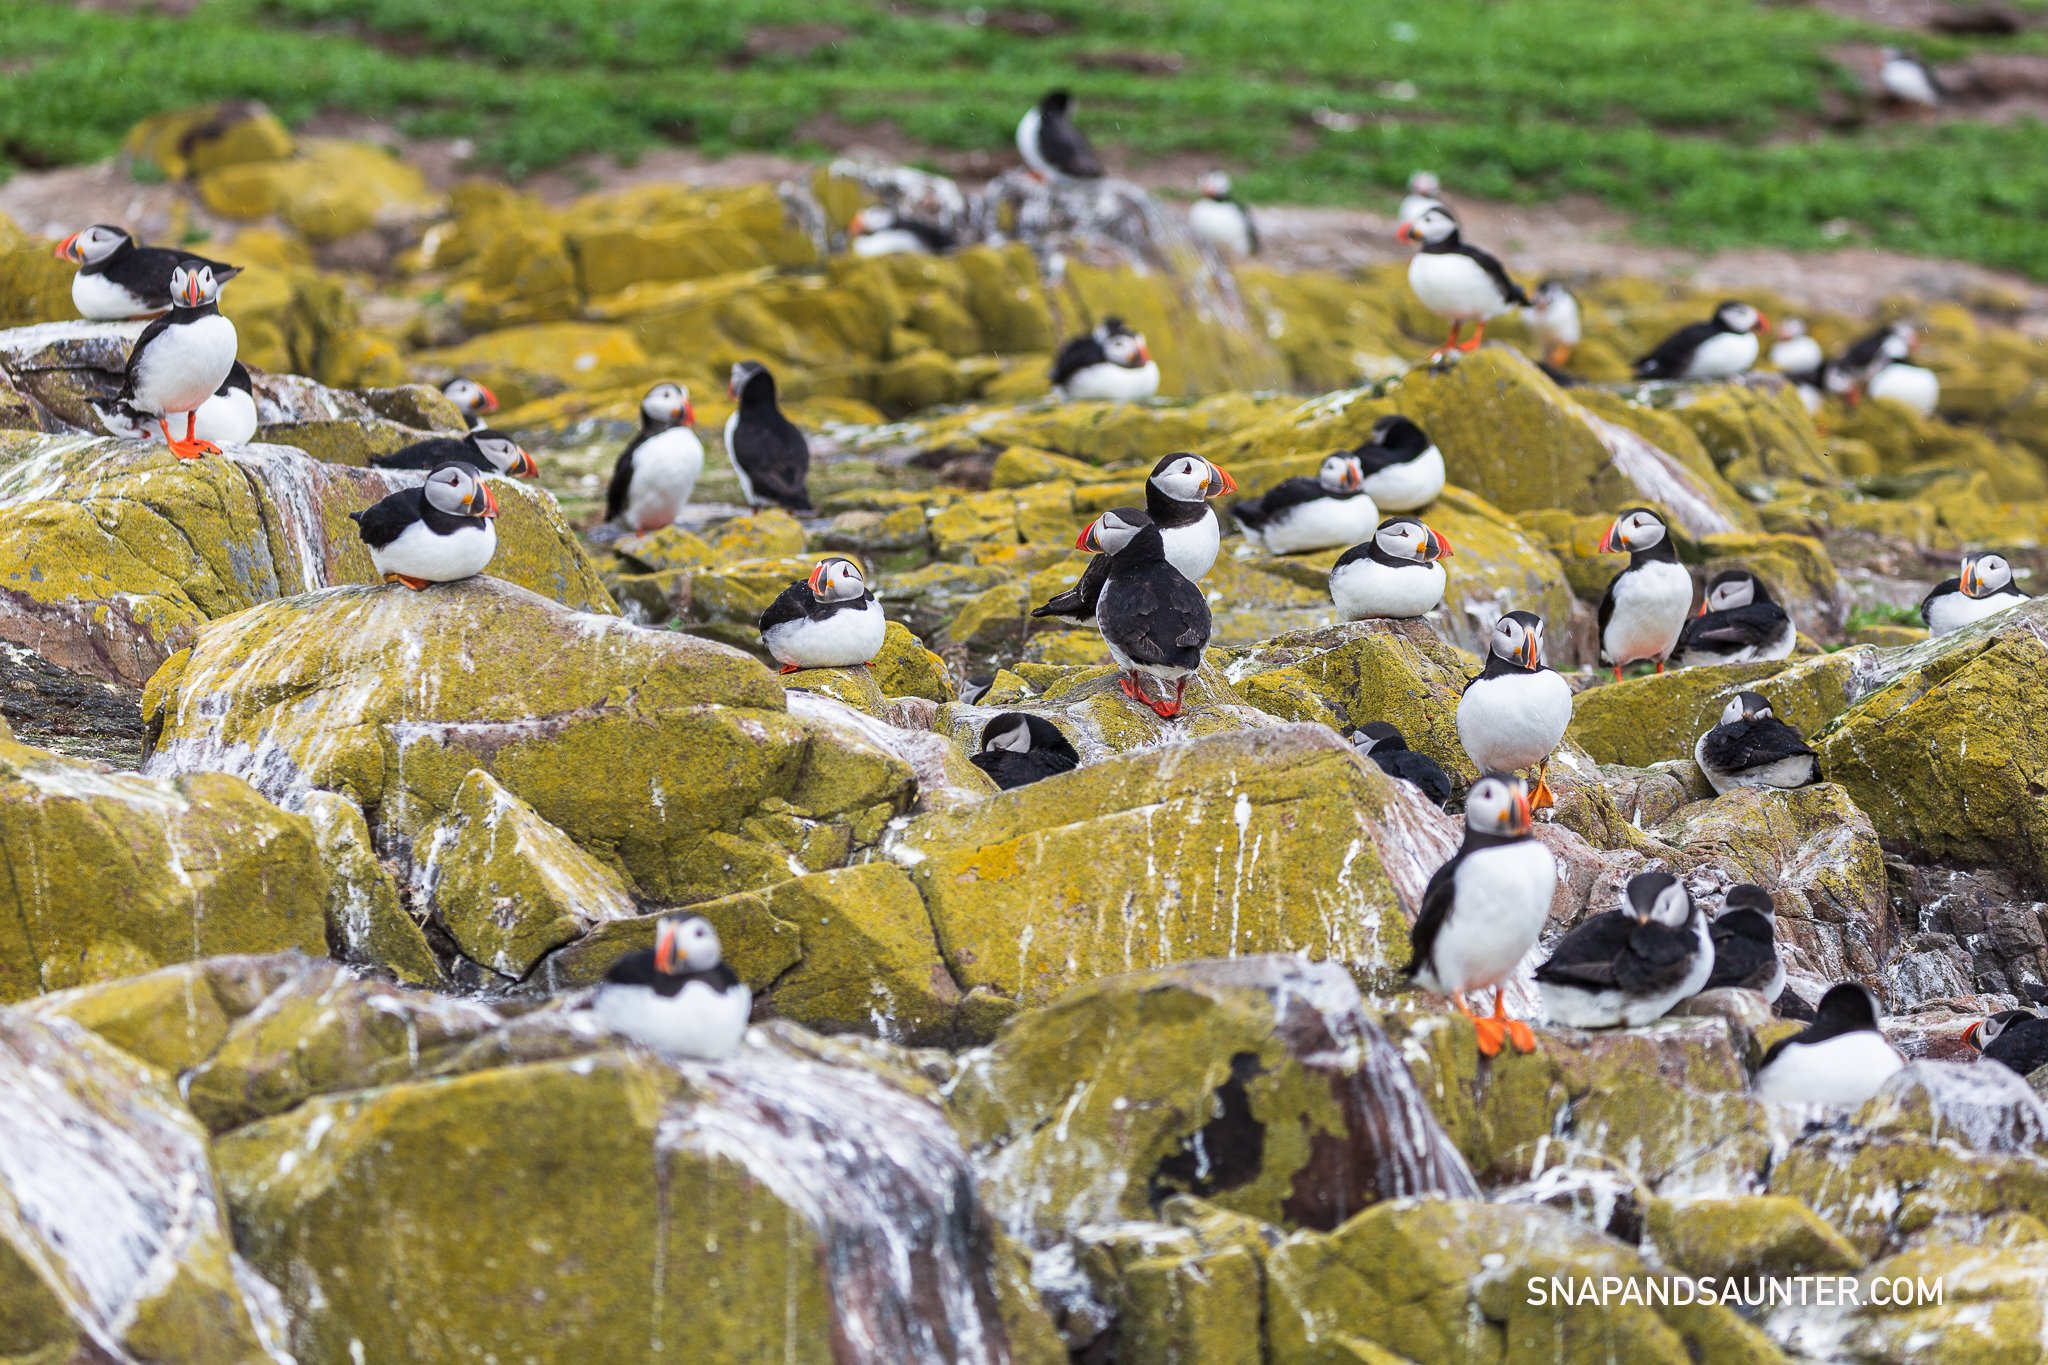 Puffins nesting on Staple Island